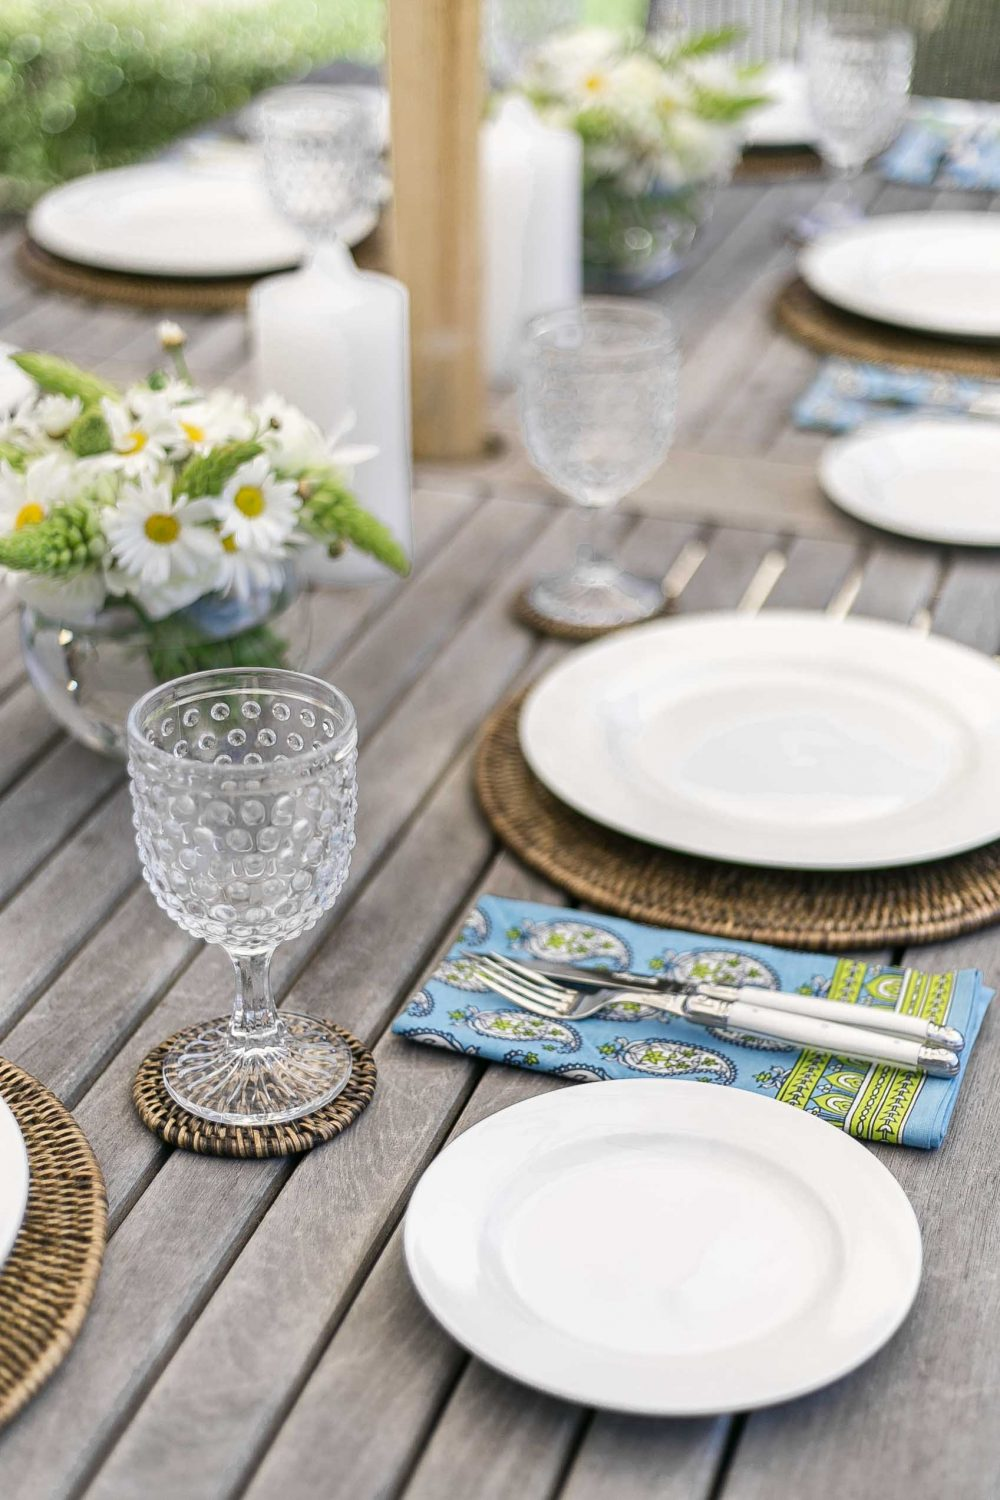 Cottonwood and Co - tips for easy and stress free entertaining